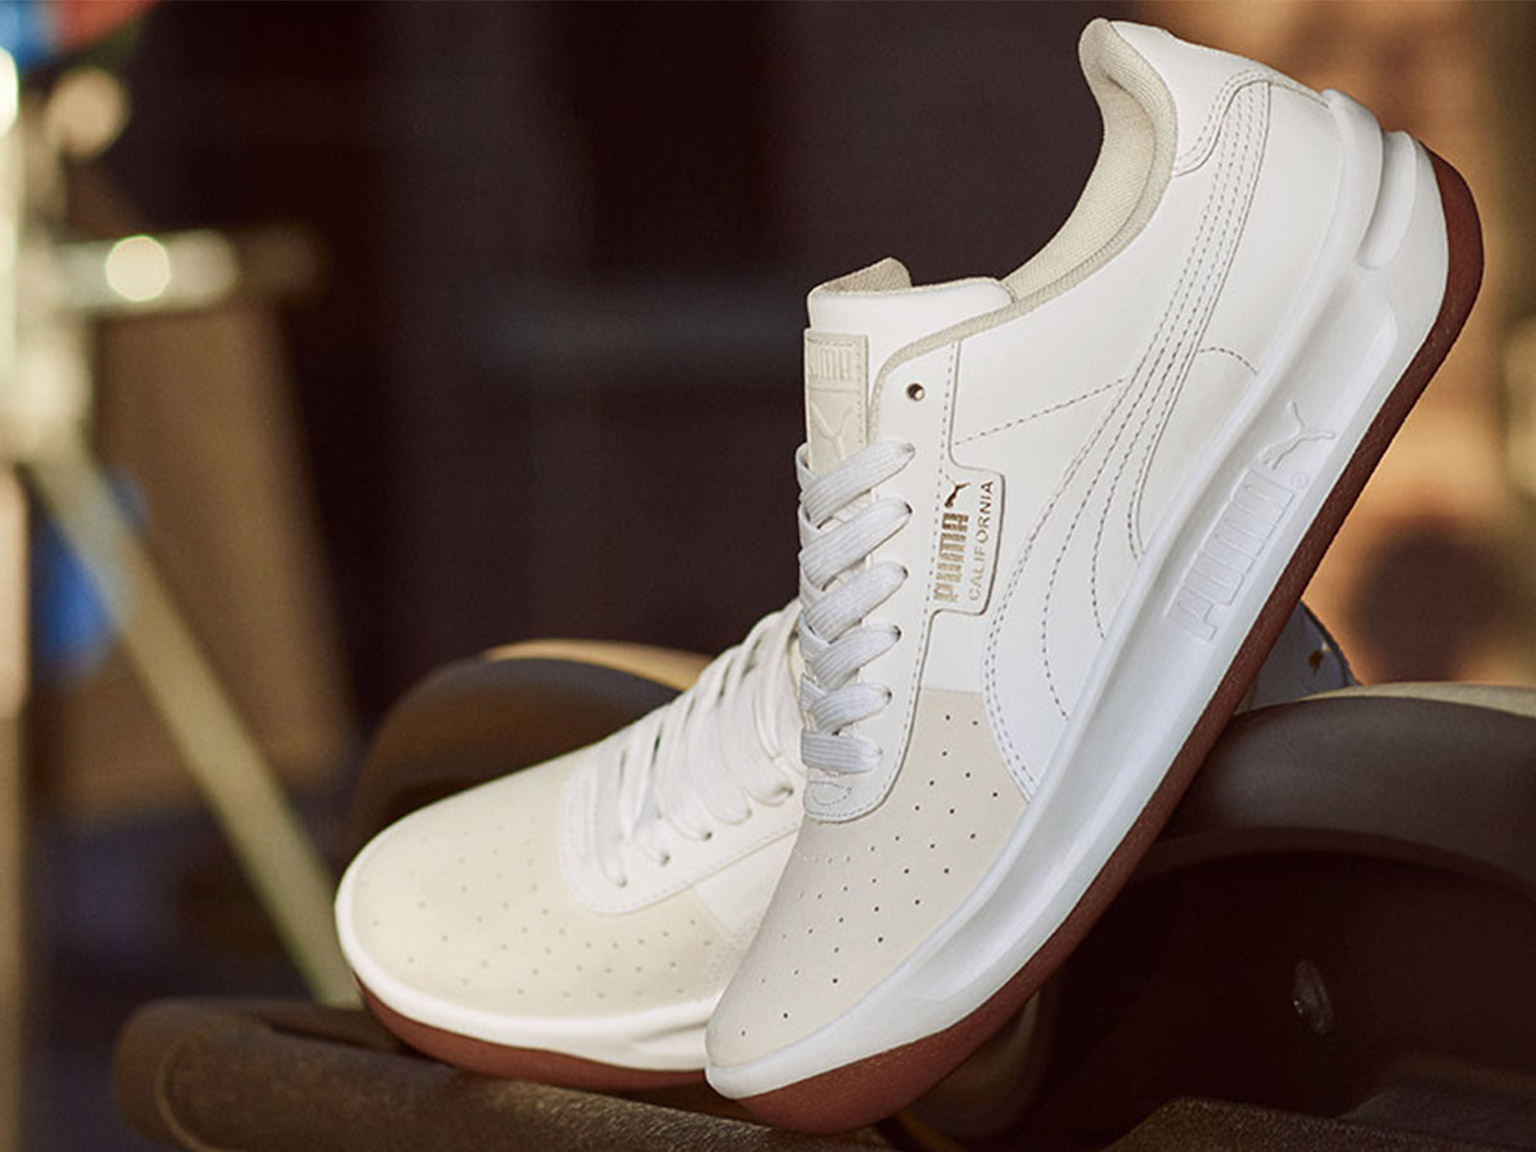 PUMA California shoes